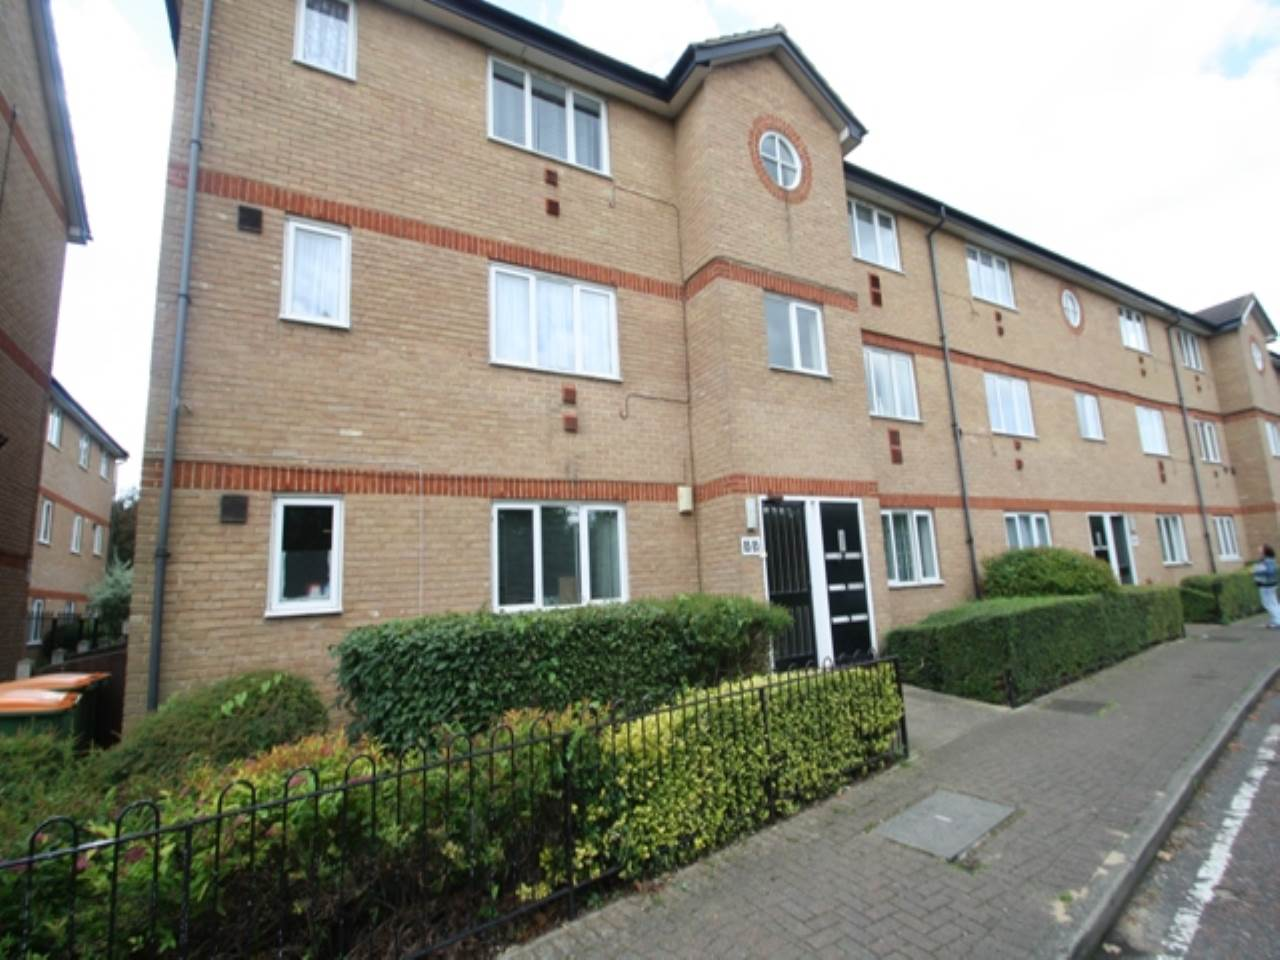 1 bed flat to rent in Beckton, E6